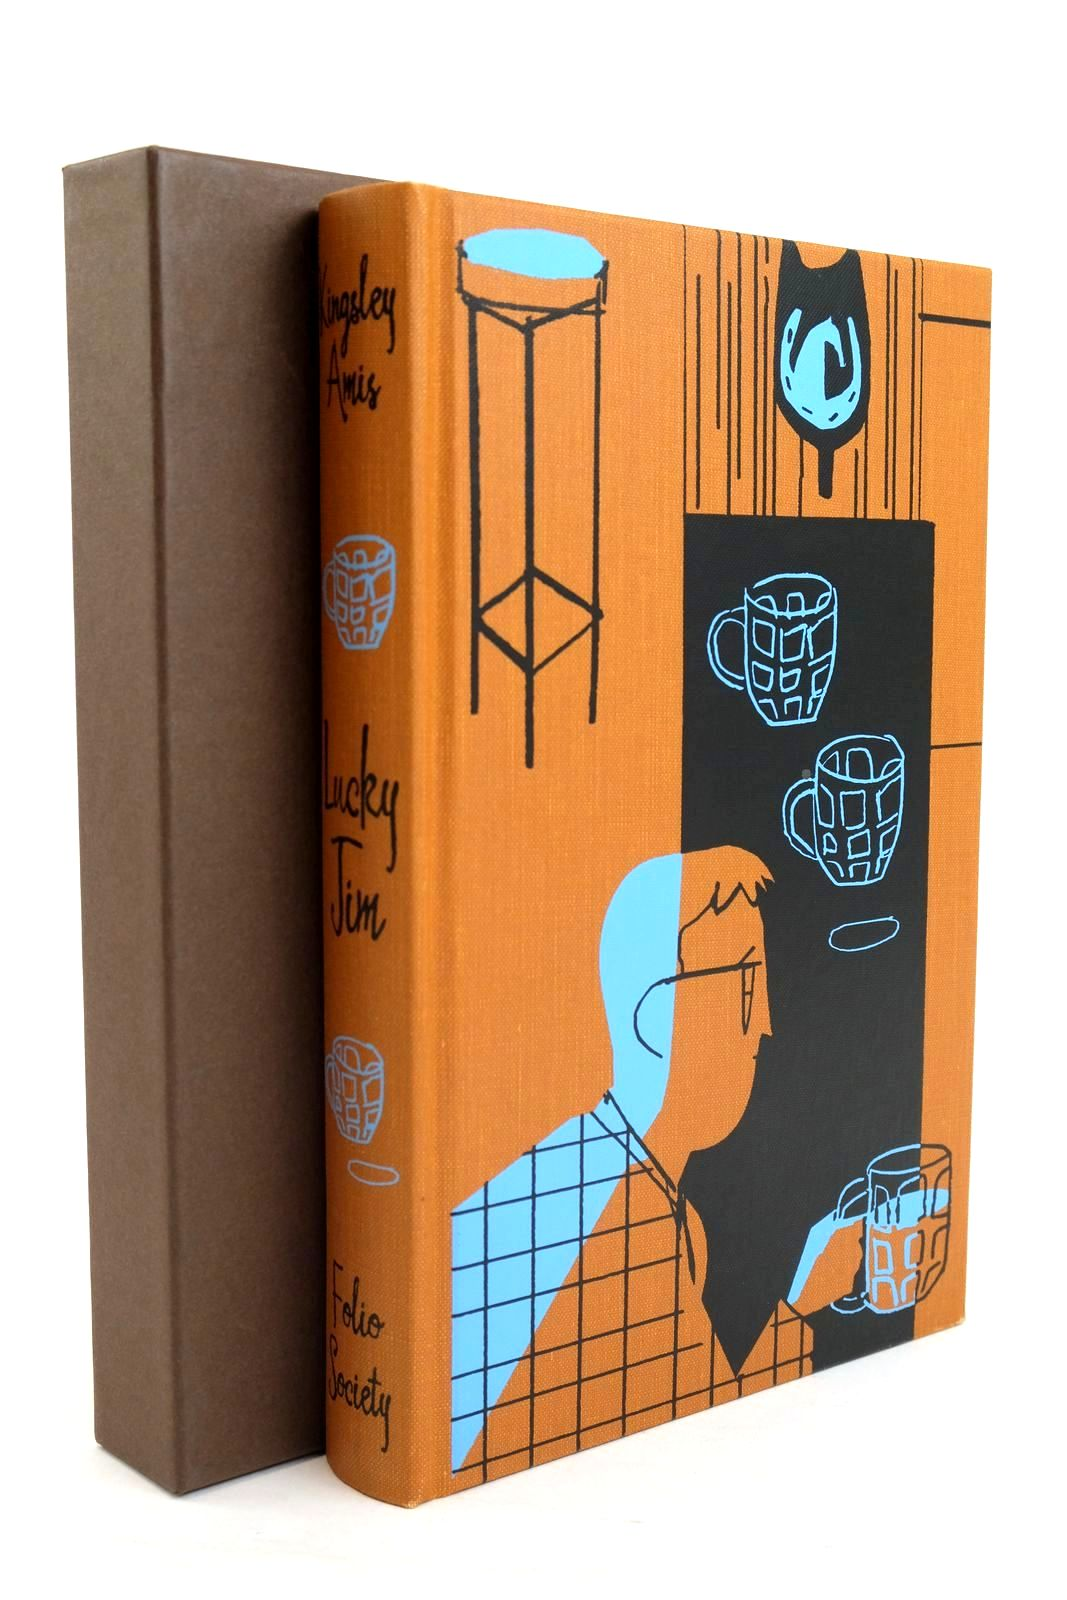 Photo of LUCKY JIM written by Amis, Kingsley illustrated by Allen, A. Richard published by Folio Society (STOCK CODE: 1319799)  for sale by Stella & Rose's Books